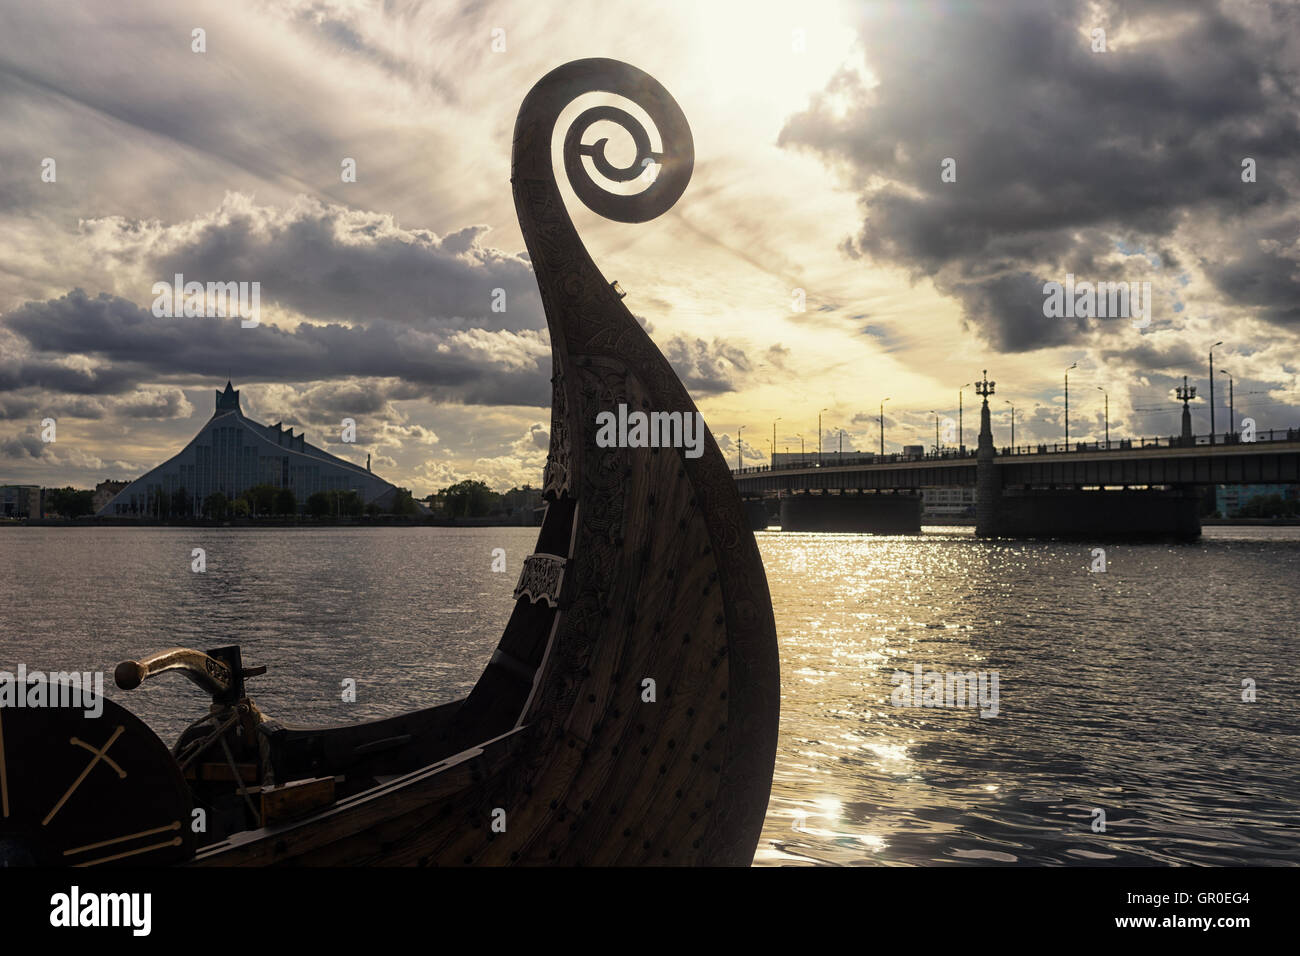 Nose Viking boat on the River Daugava on the background of the Latvian National Library and the Stone Bridge - Stock Image